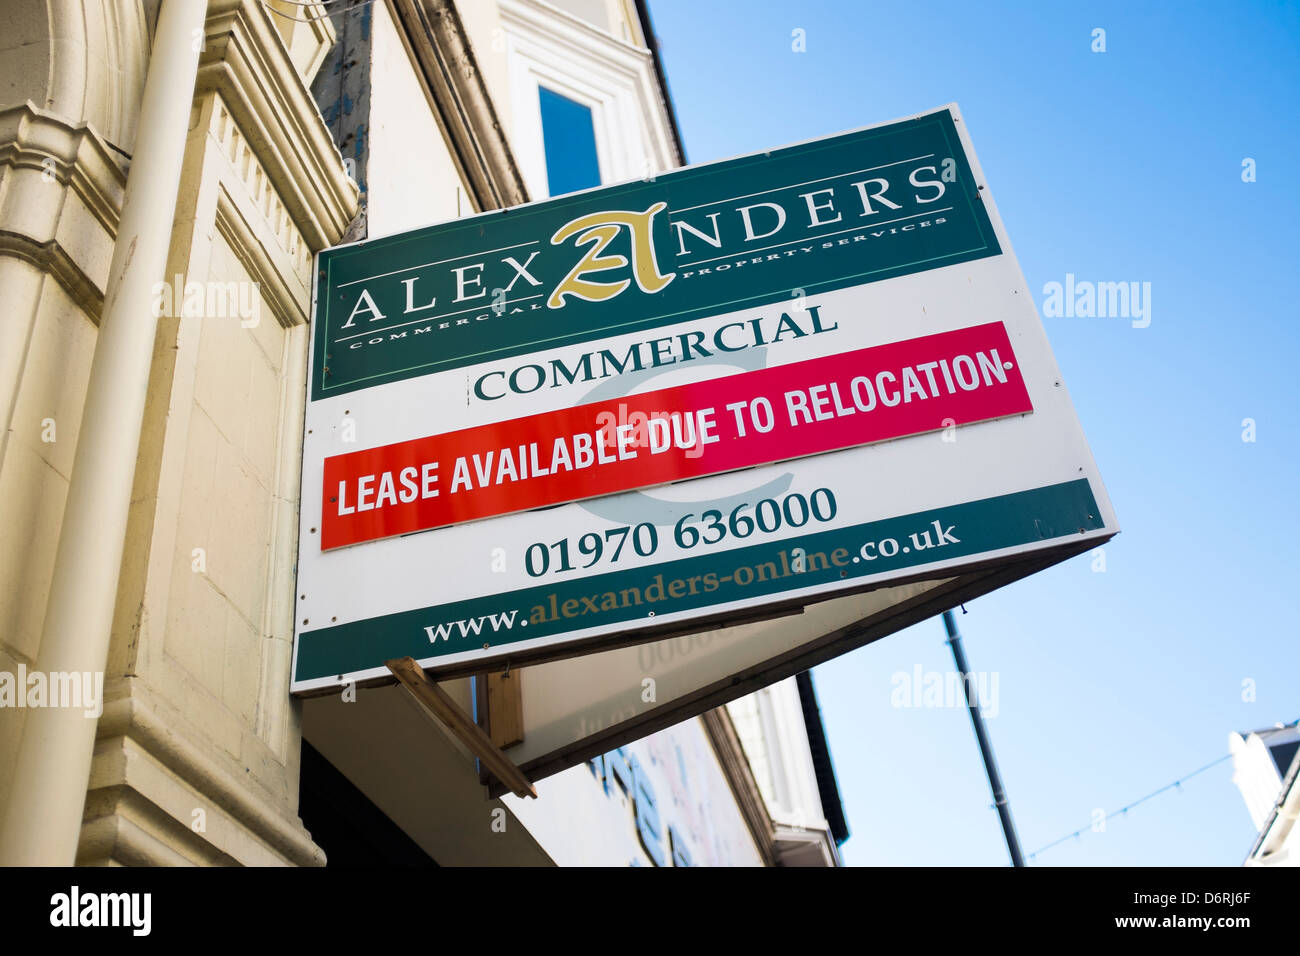 Commercial shop lease available due to relocation - estate agents sign above retail store, UK - Stock Image